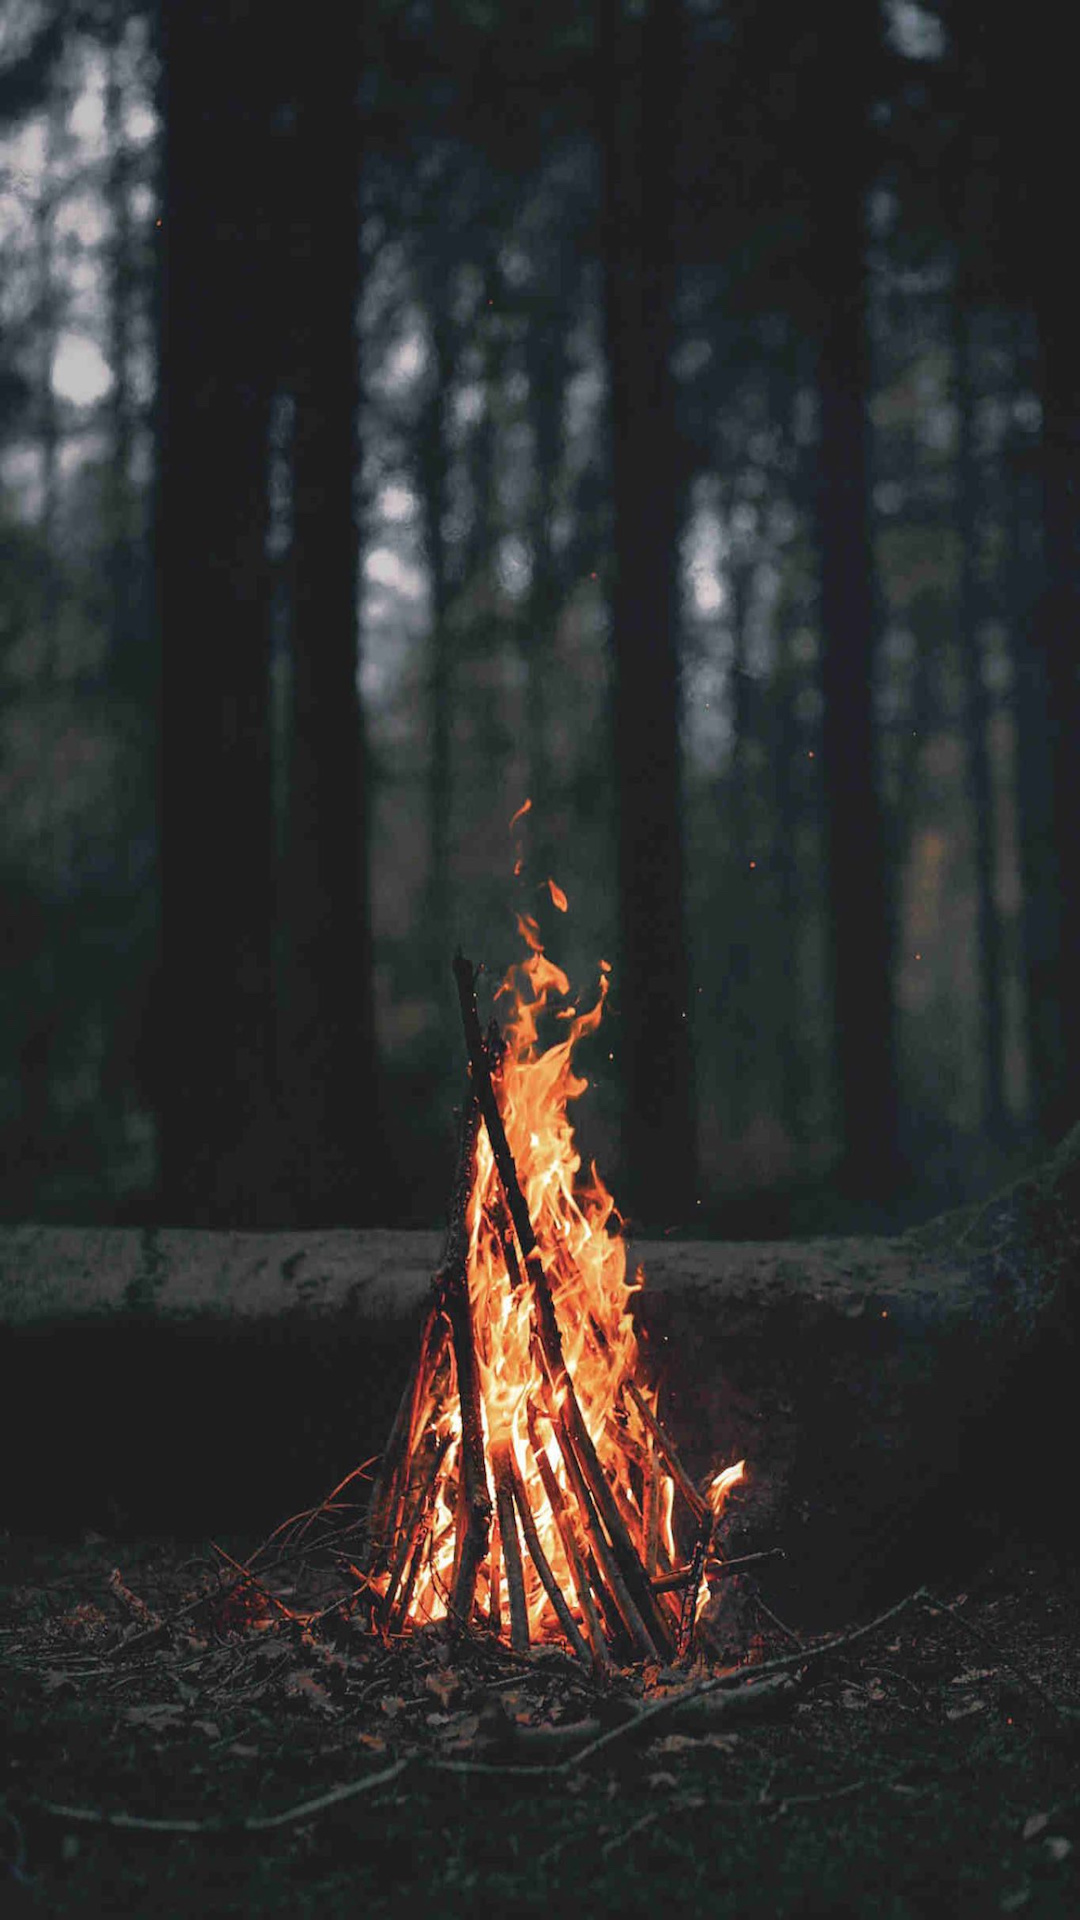 iPhone wallpaper campfire2 Les 3Wallpapers iPhone du jour (12/02/2018)